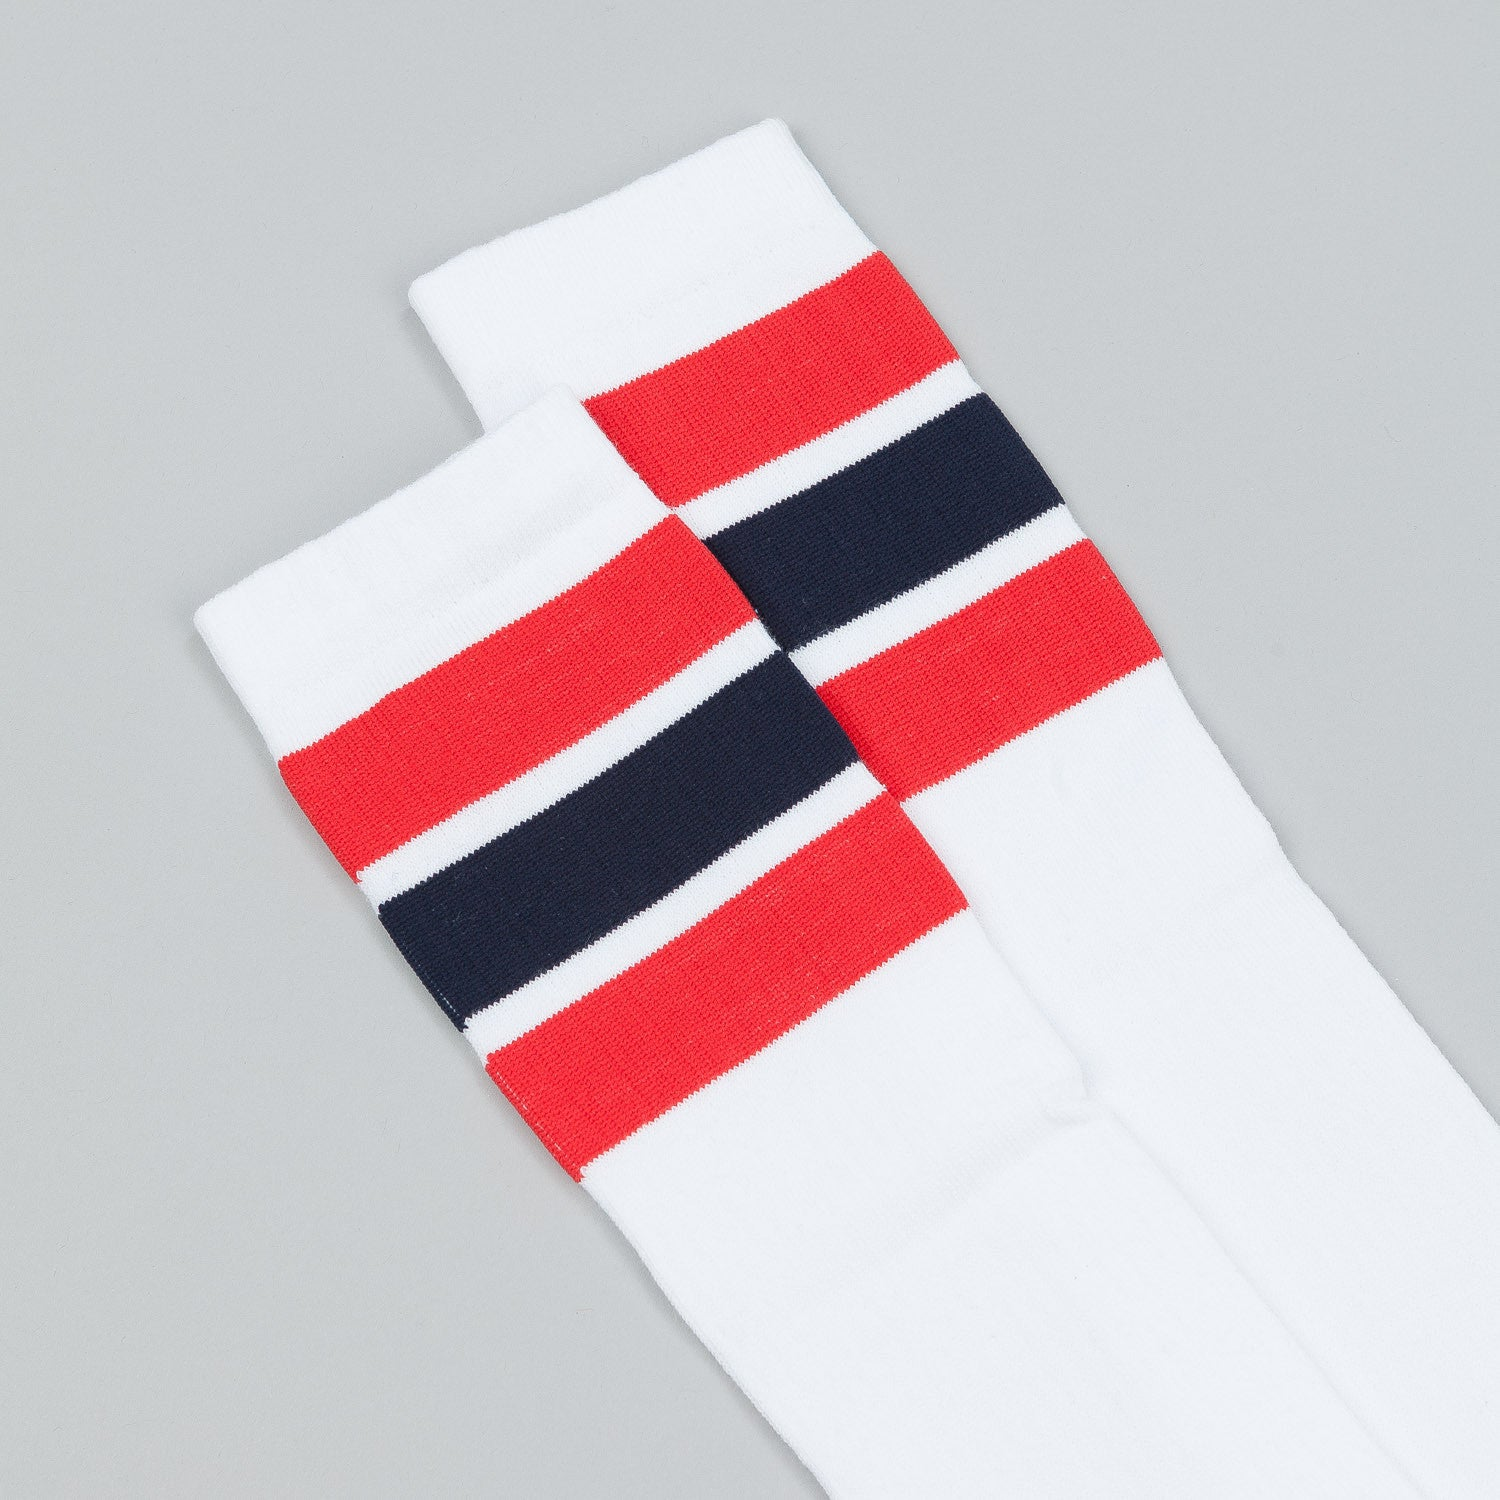 Polar Happy Sad Knee High Socks - White / Red / Navy